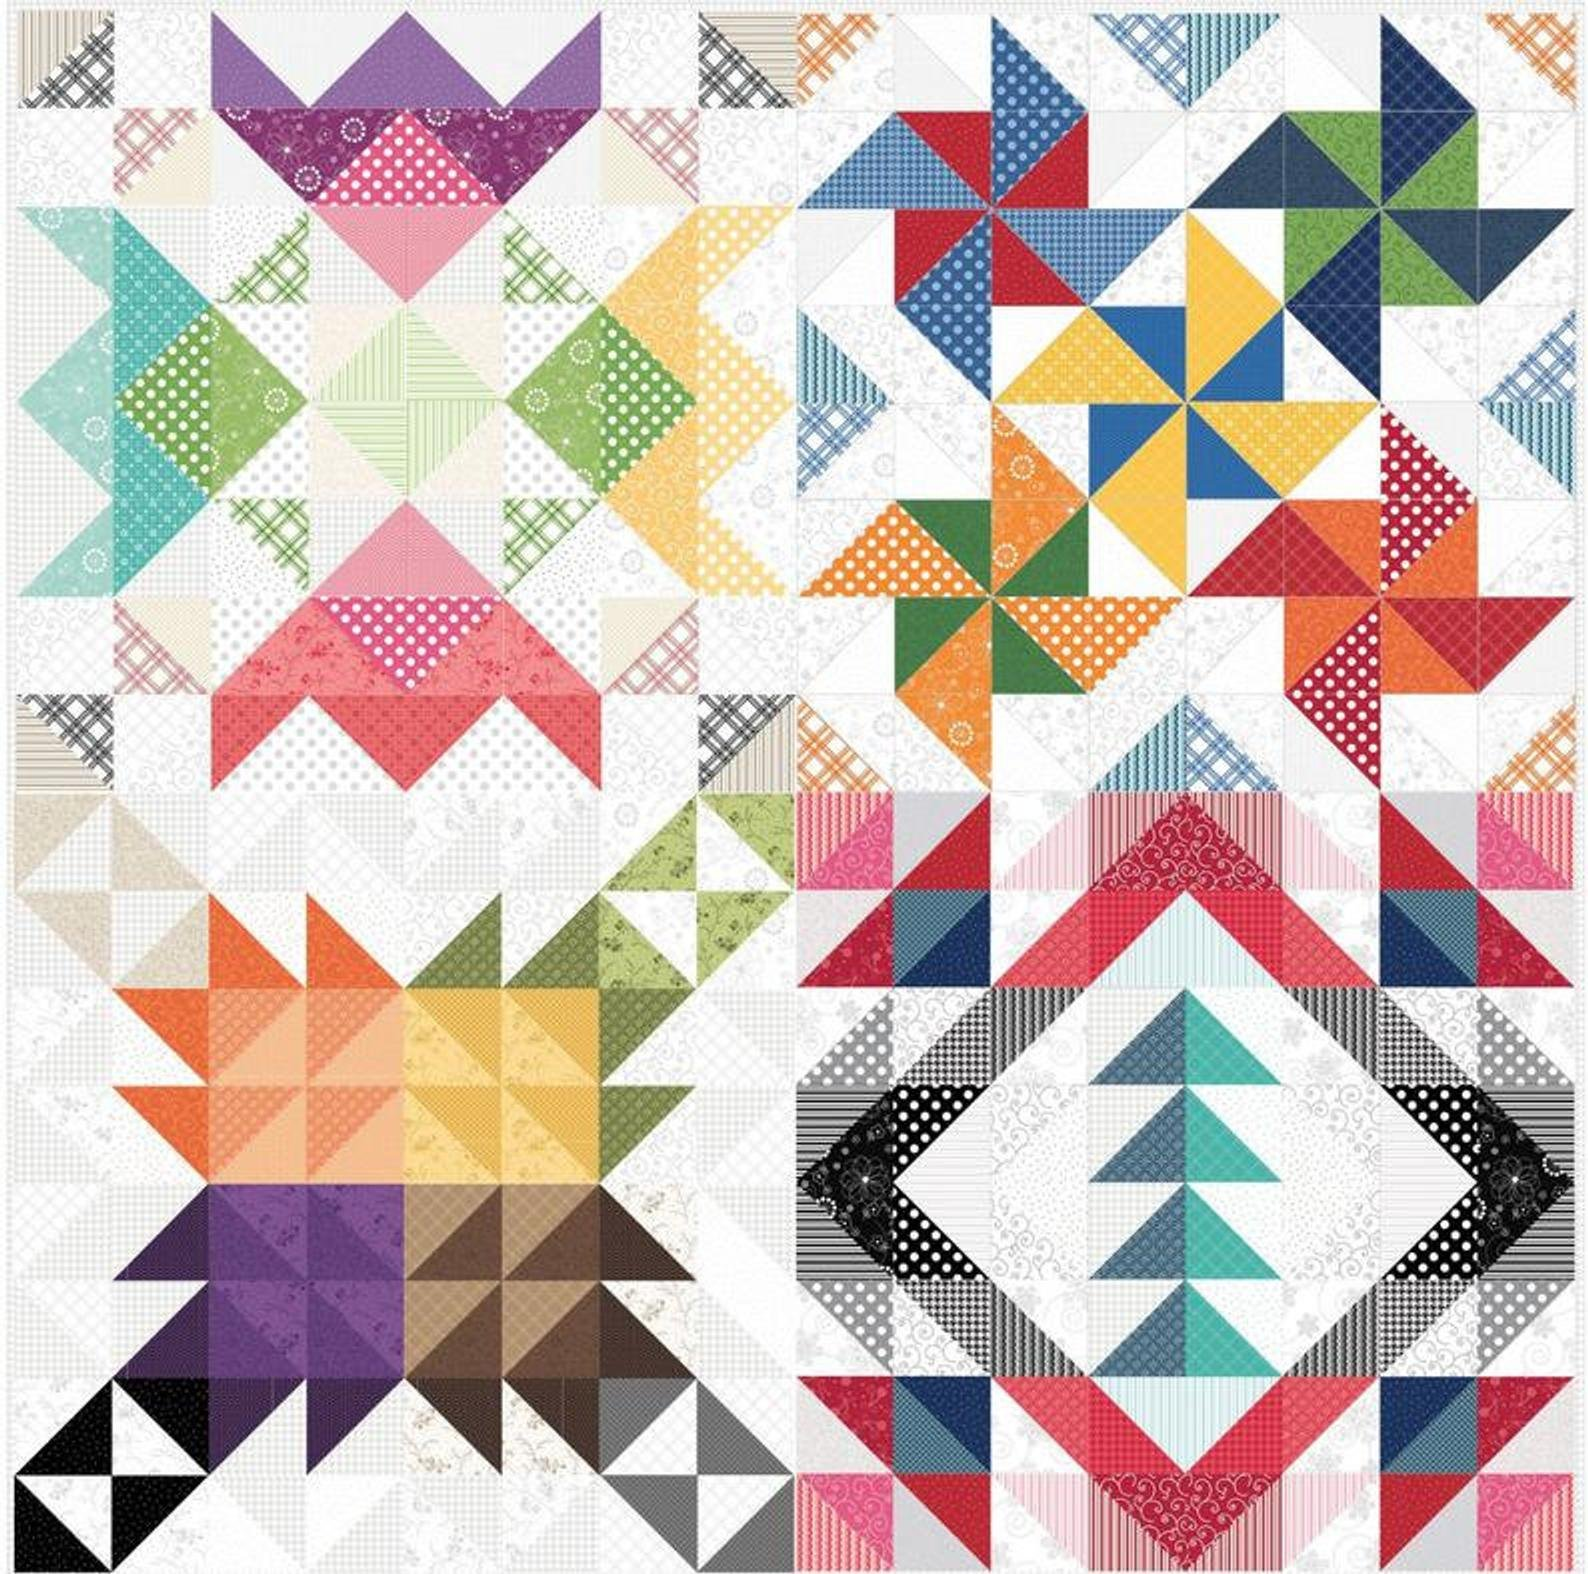 Kimberbell Basics quilt kit by Maywood Studio KIT-MASKBB